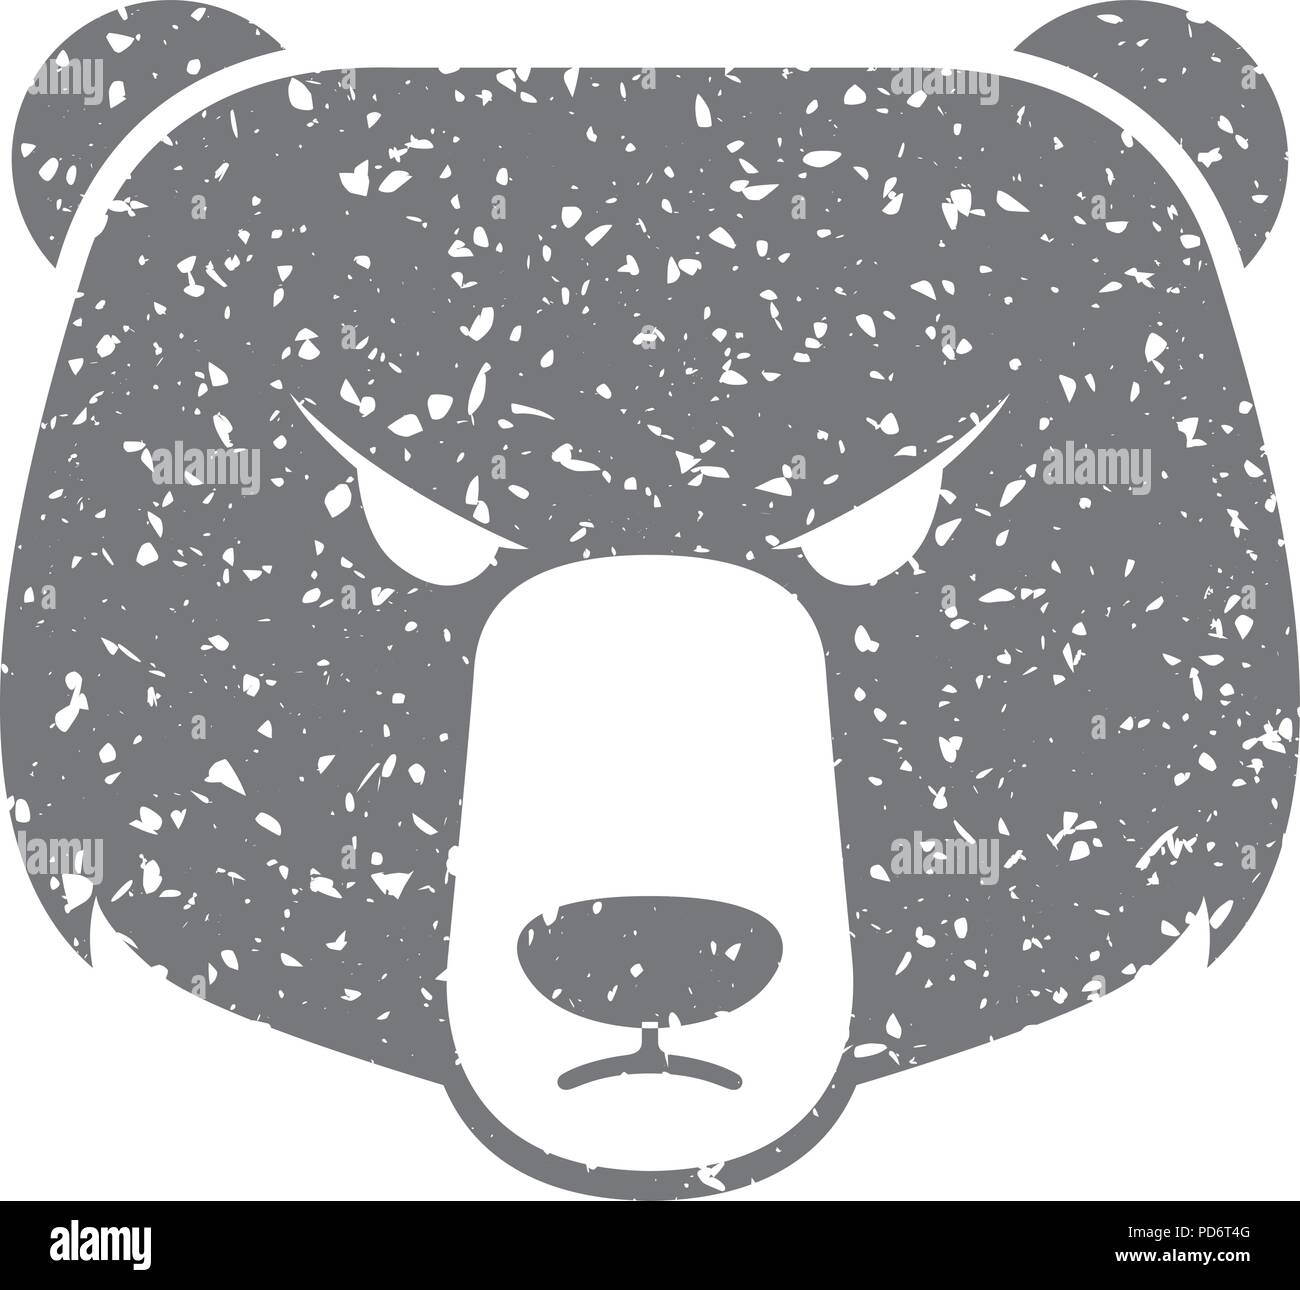 Grunge icon - Bear - Stock Image